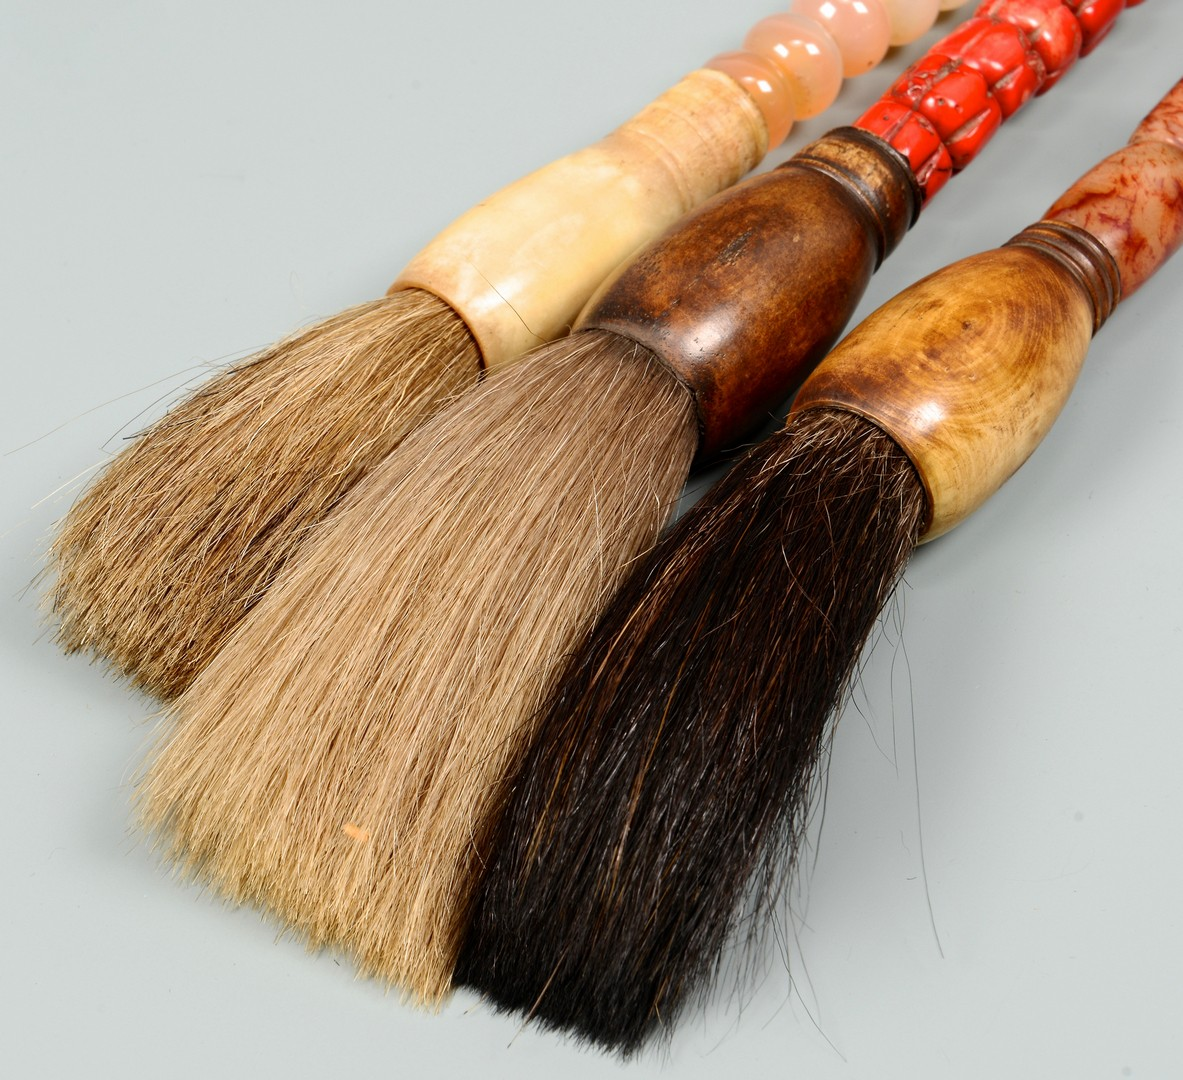 Lot 3832372: 3 Chinese Calligraphy Brushes